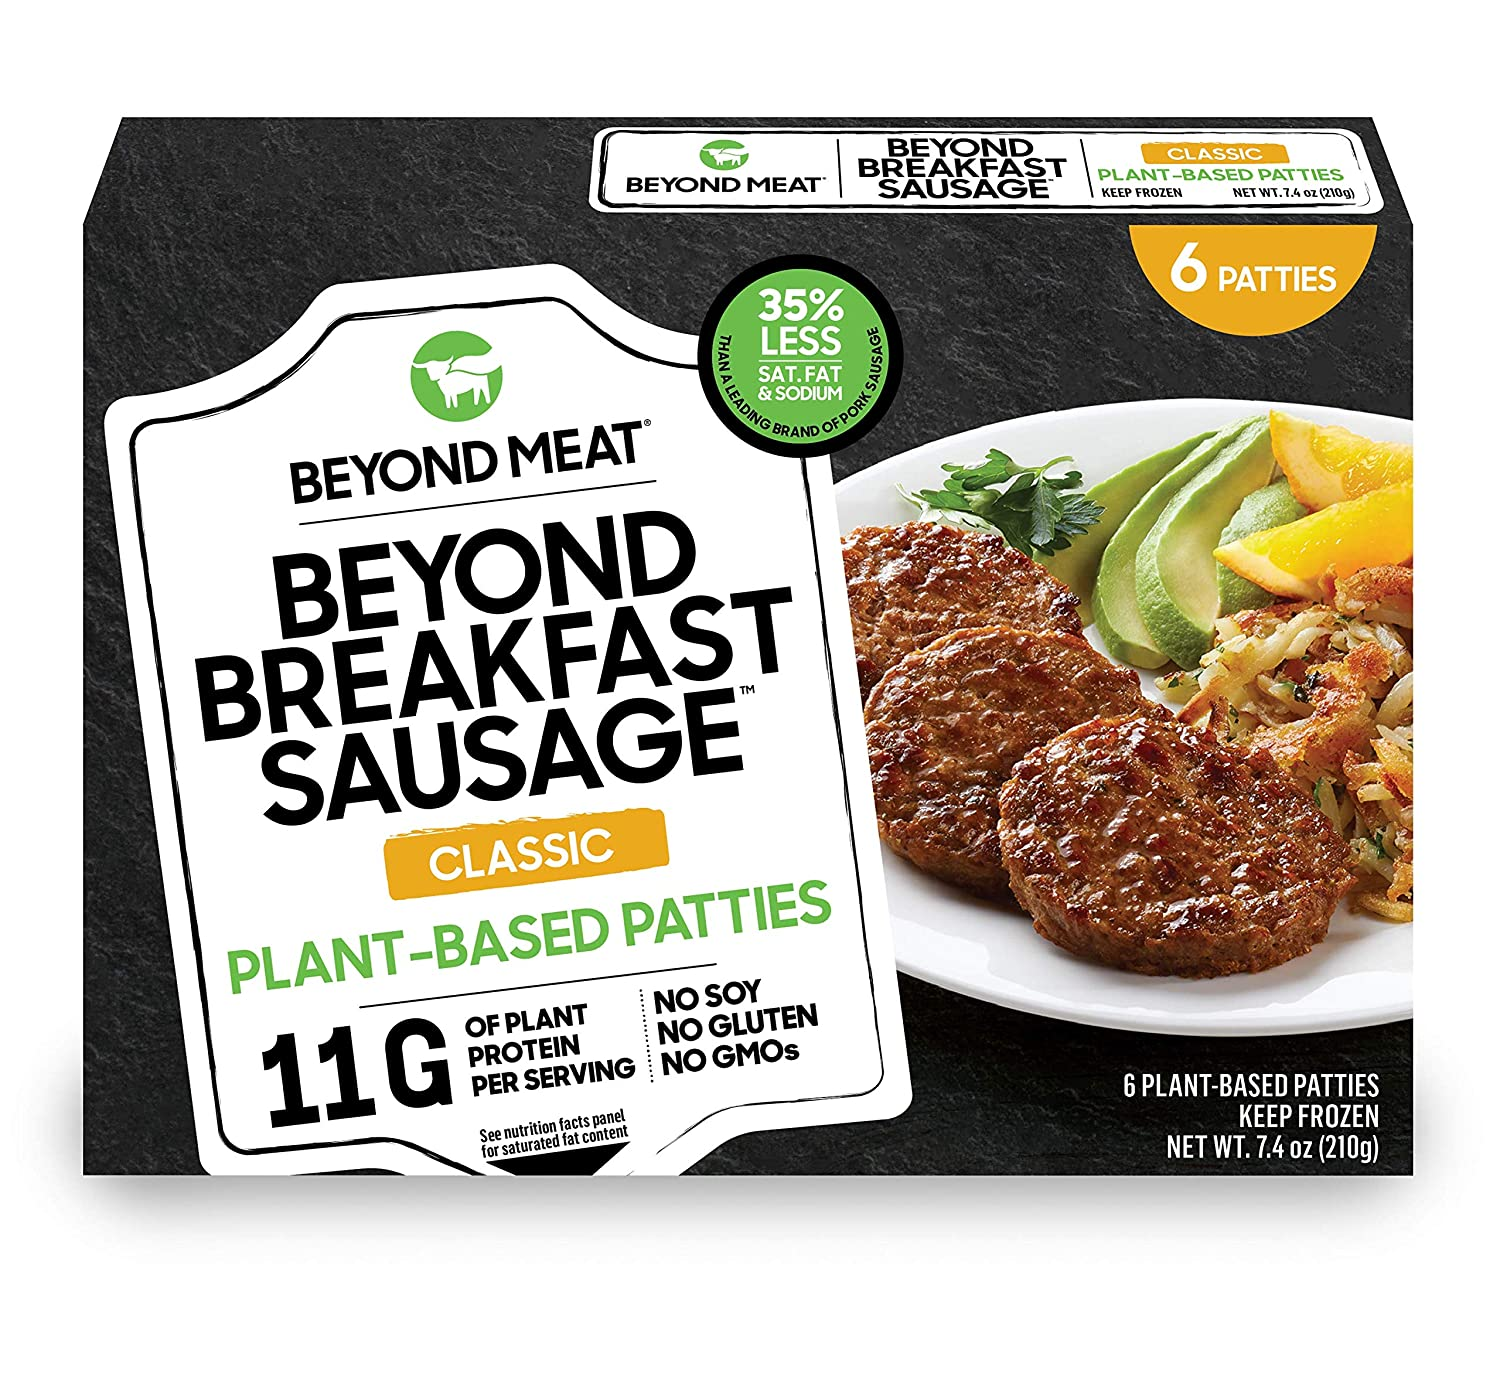 BEYOND MEAT Breakfast Sausage Patties, Plant-Based Meat Alternative, Heat and Eat- Frozen, 7.4 oz. Box, Classic Flavor